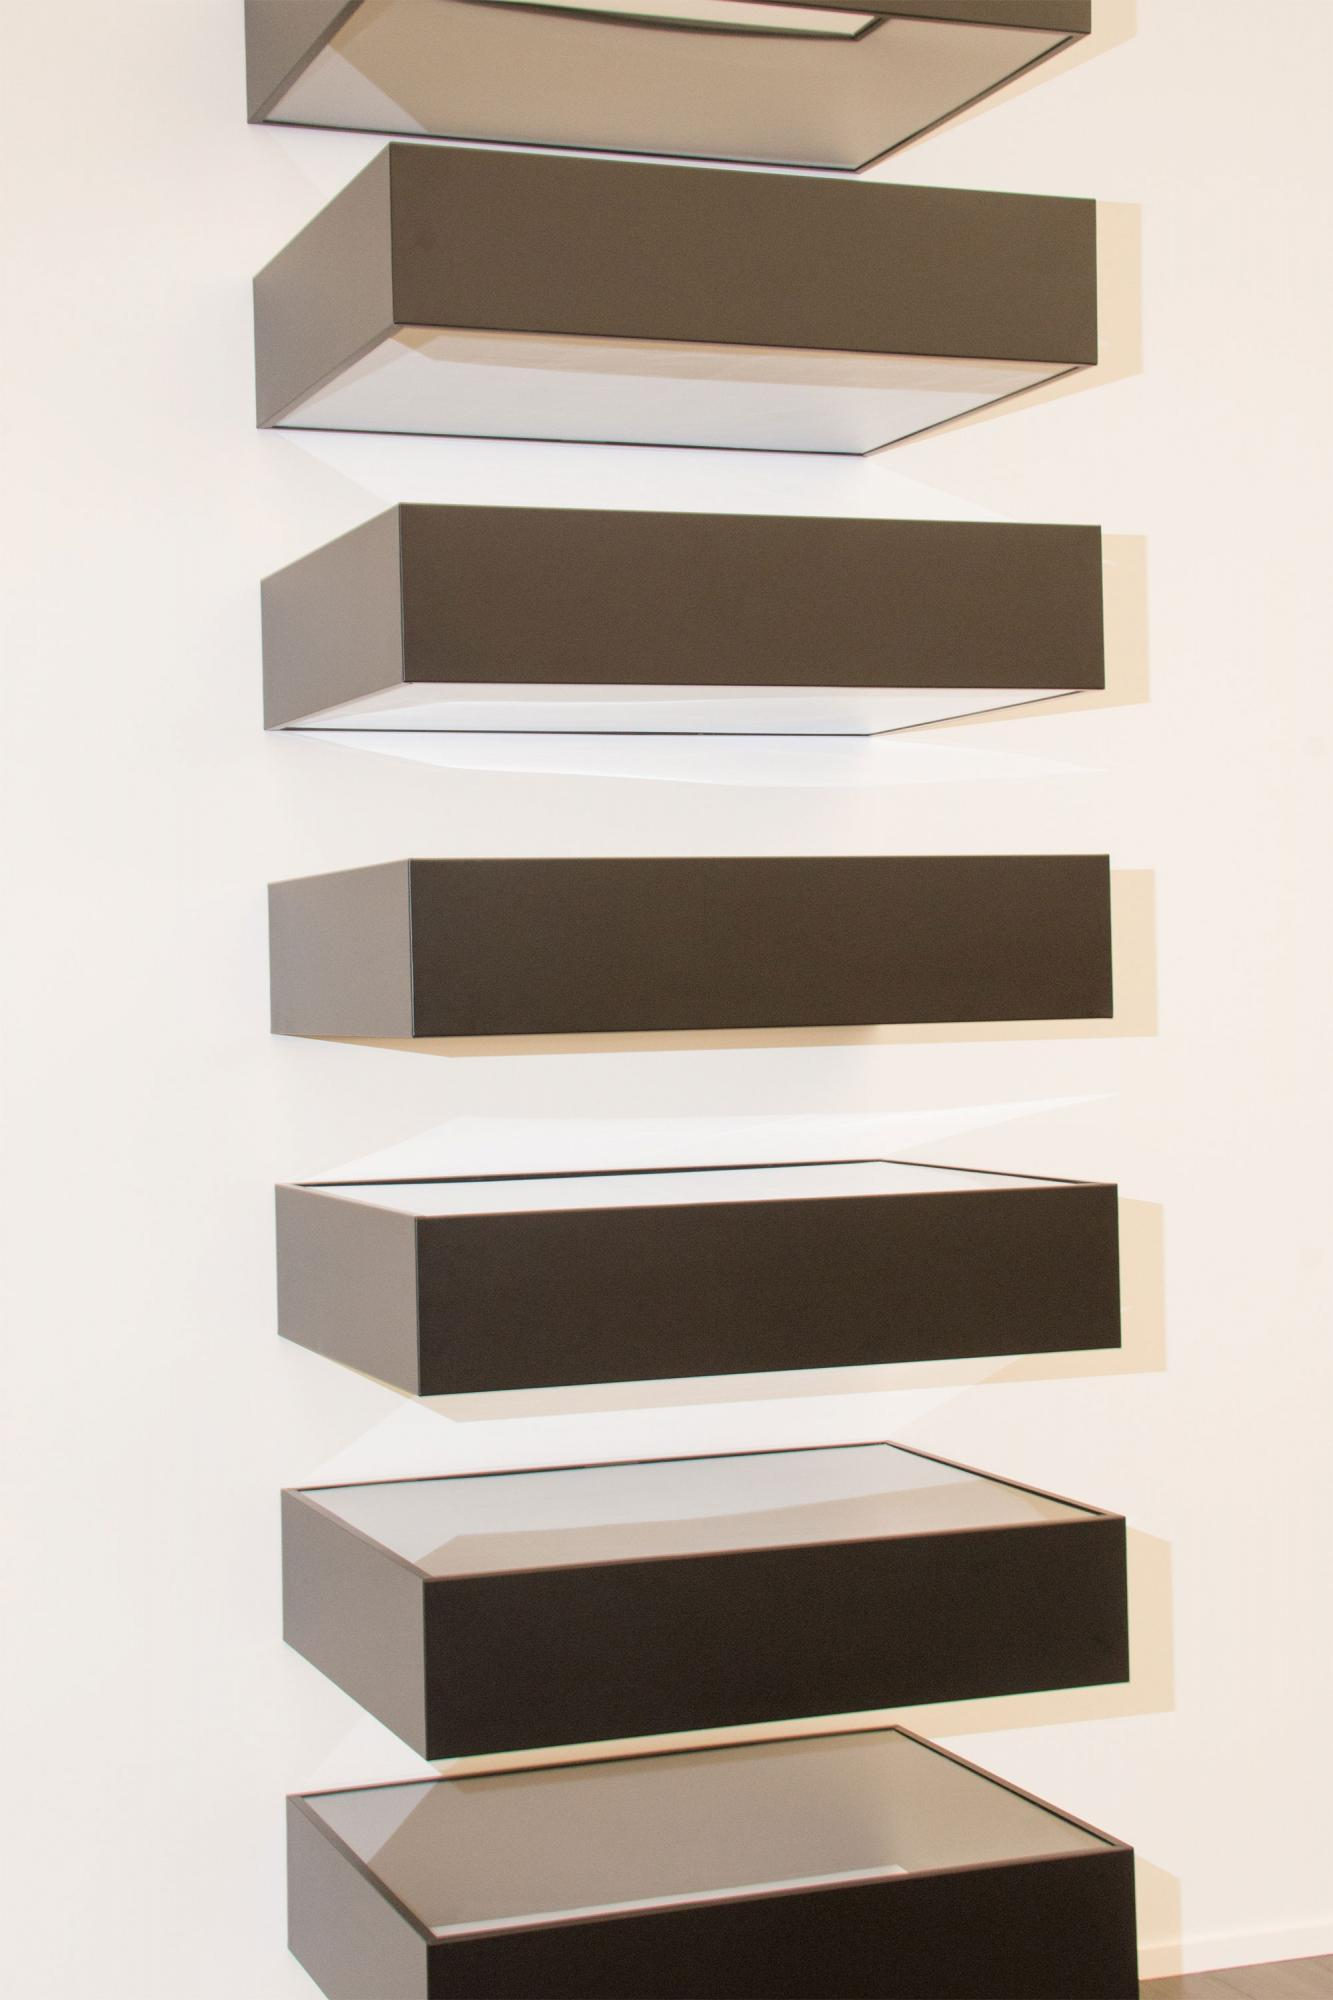 Donald Judd at David Zwirner